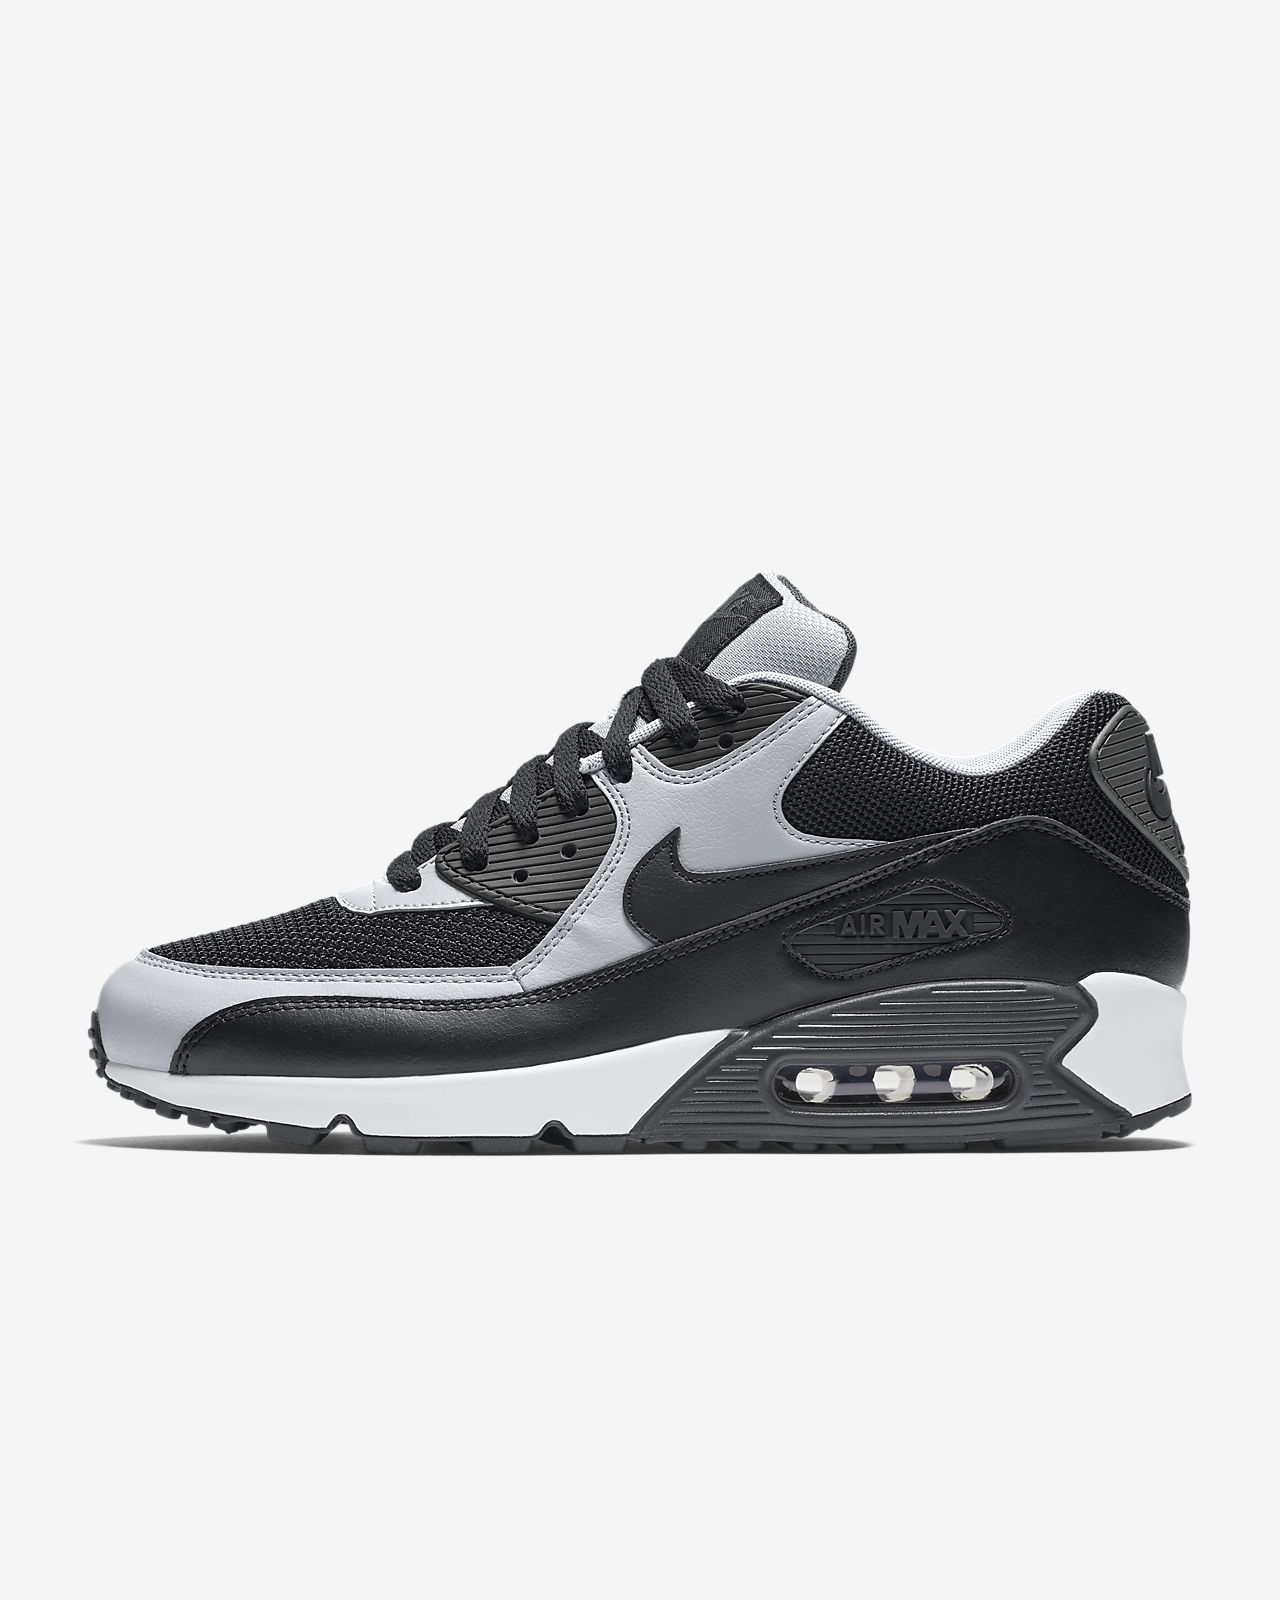 Nike Air Max 90 Essential men lifestyle sneakers NEW black